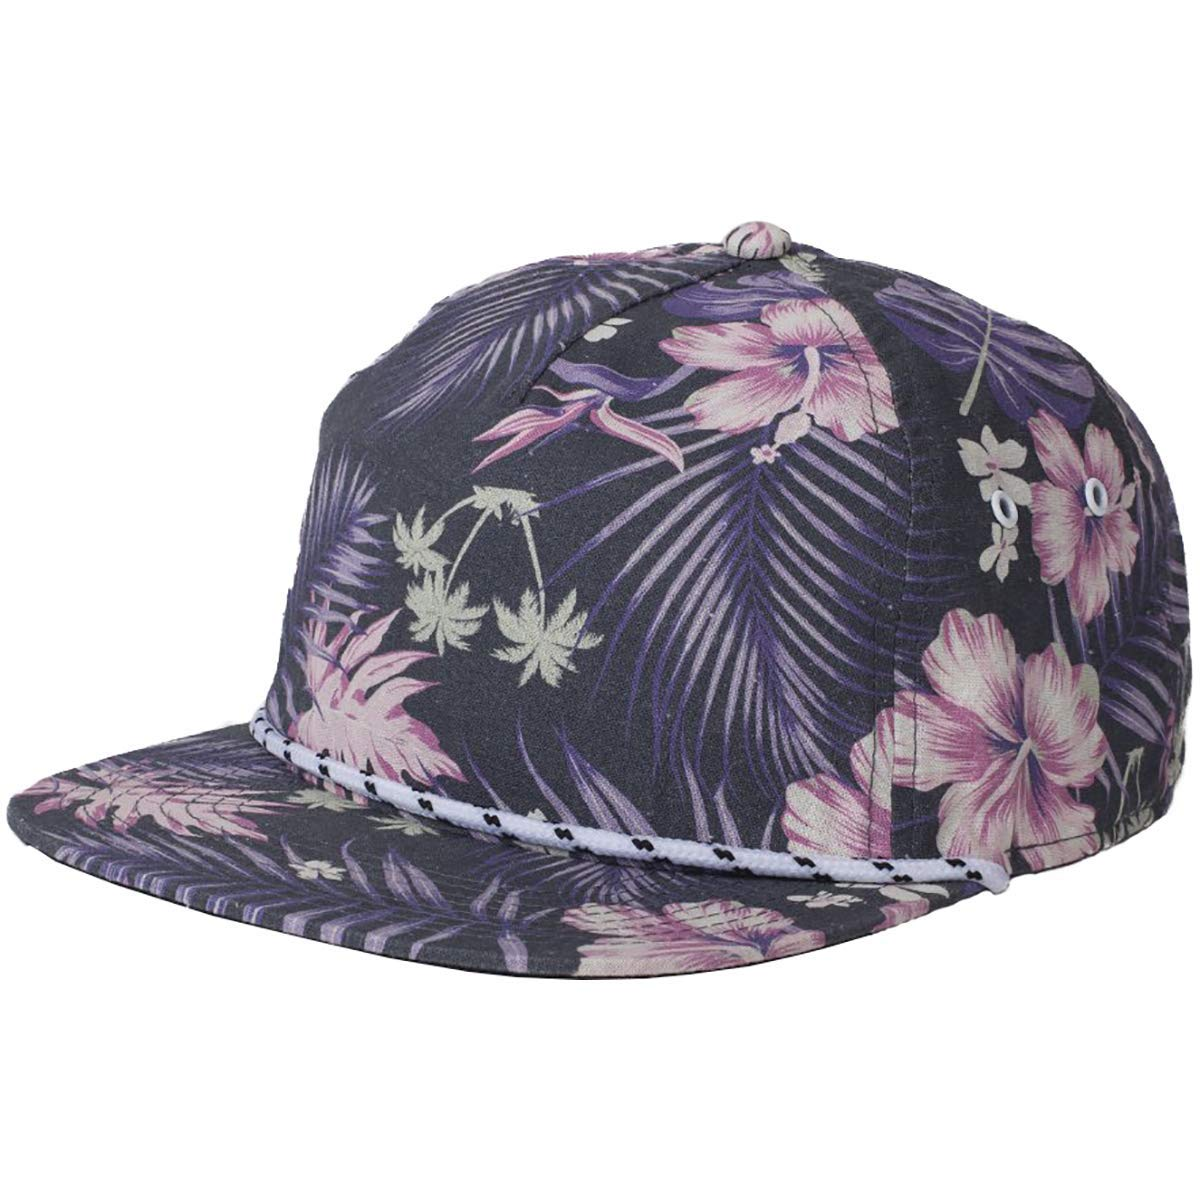 NEFF Mens Fitted Patterned Design Hat, Charcoal, One Size: Amazon ...